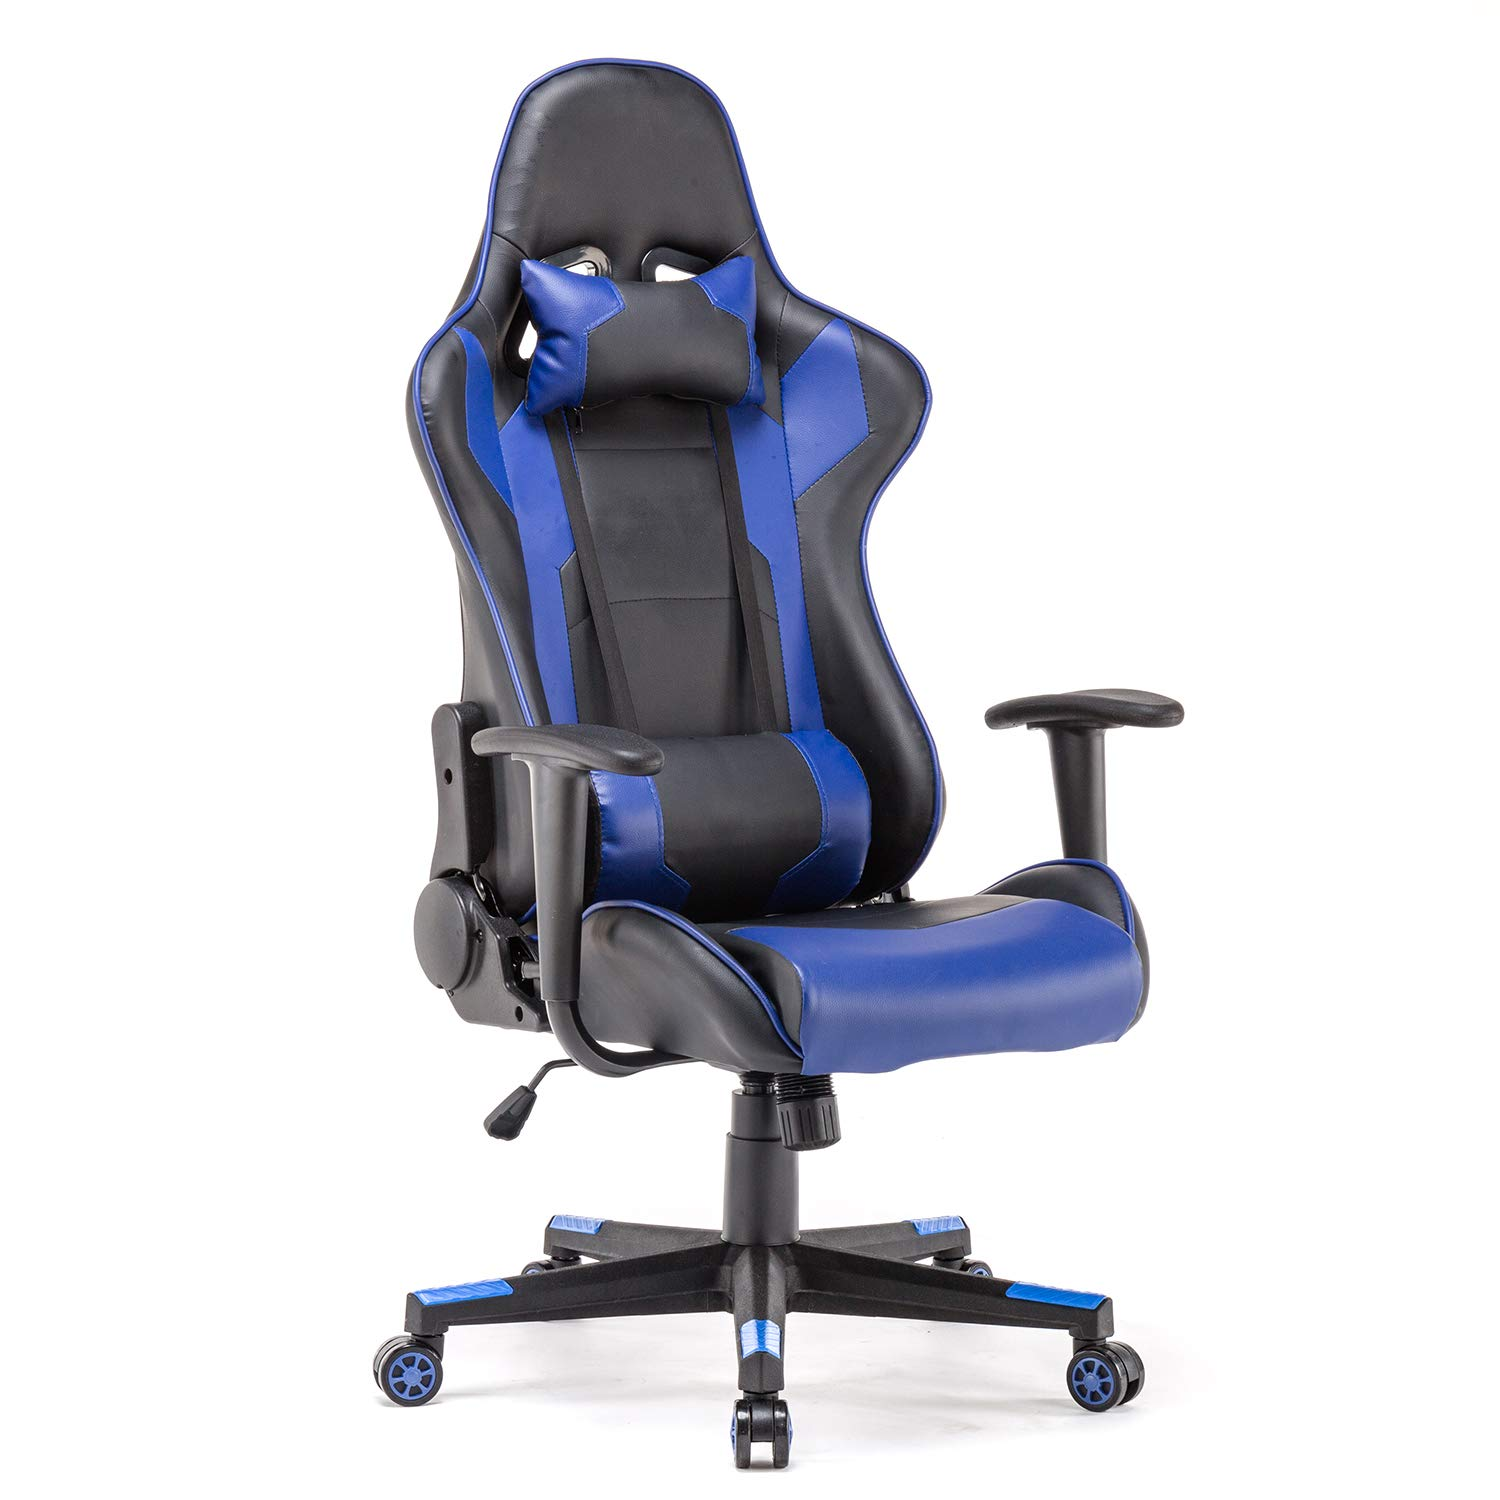 Polar Aurora Gaming Chair Racing Style High-Back PU Leather Office Chair Computer Desk Chair Executive Ergonomic Style Swivel Chair Headrest Lumbar Support Blue